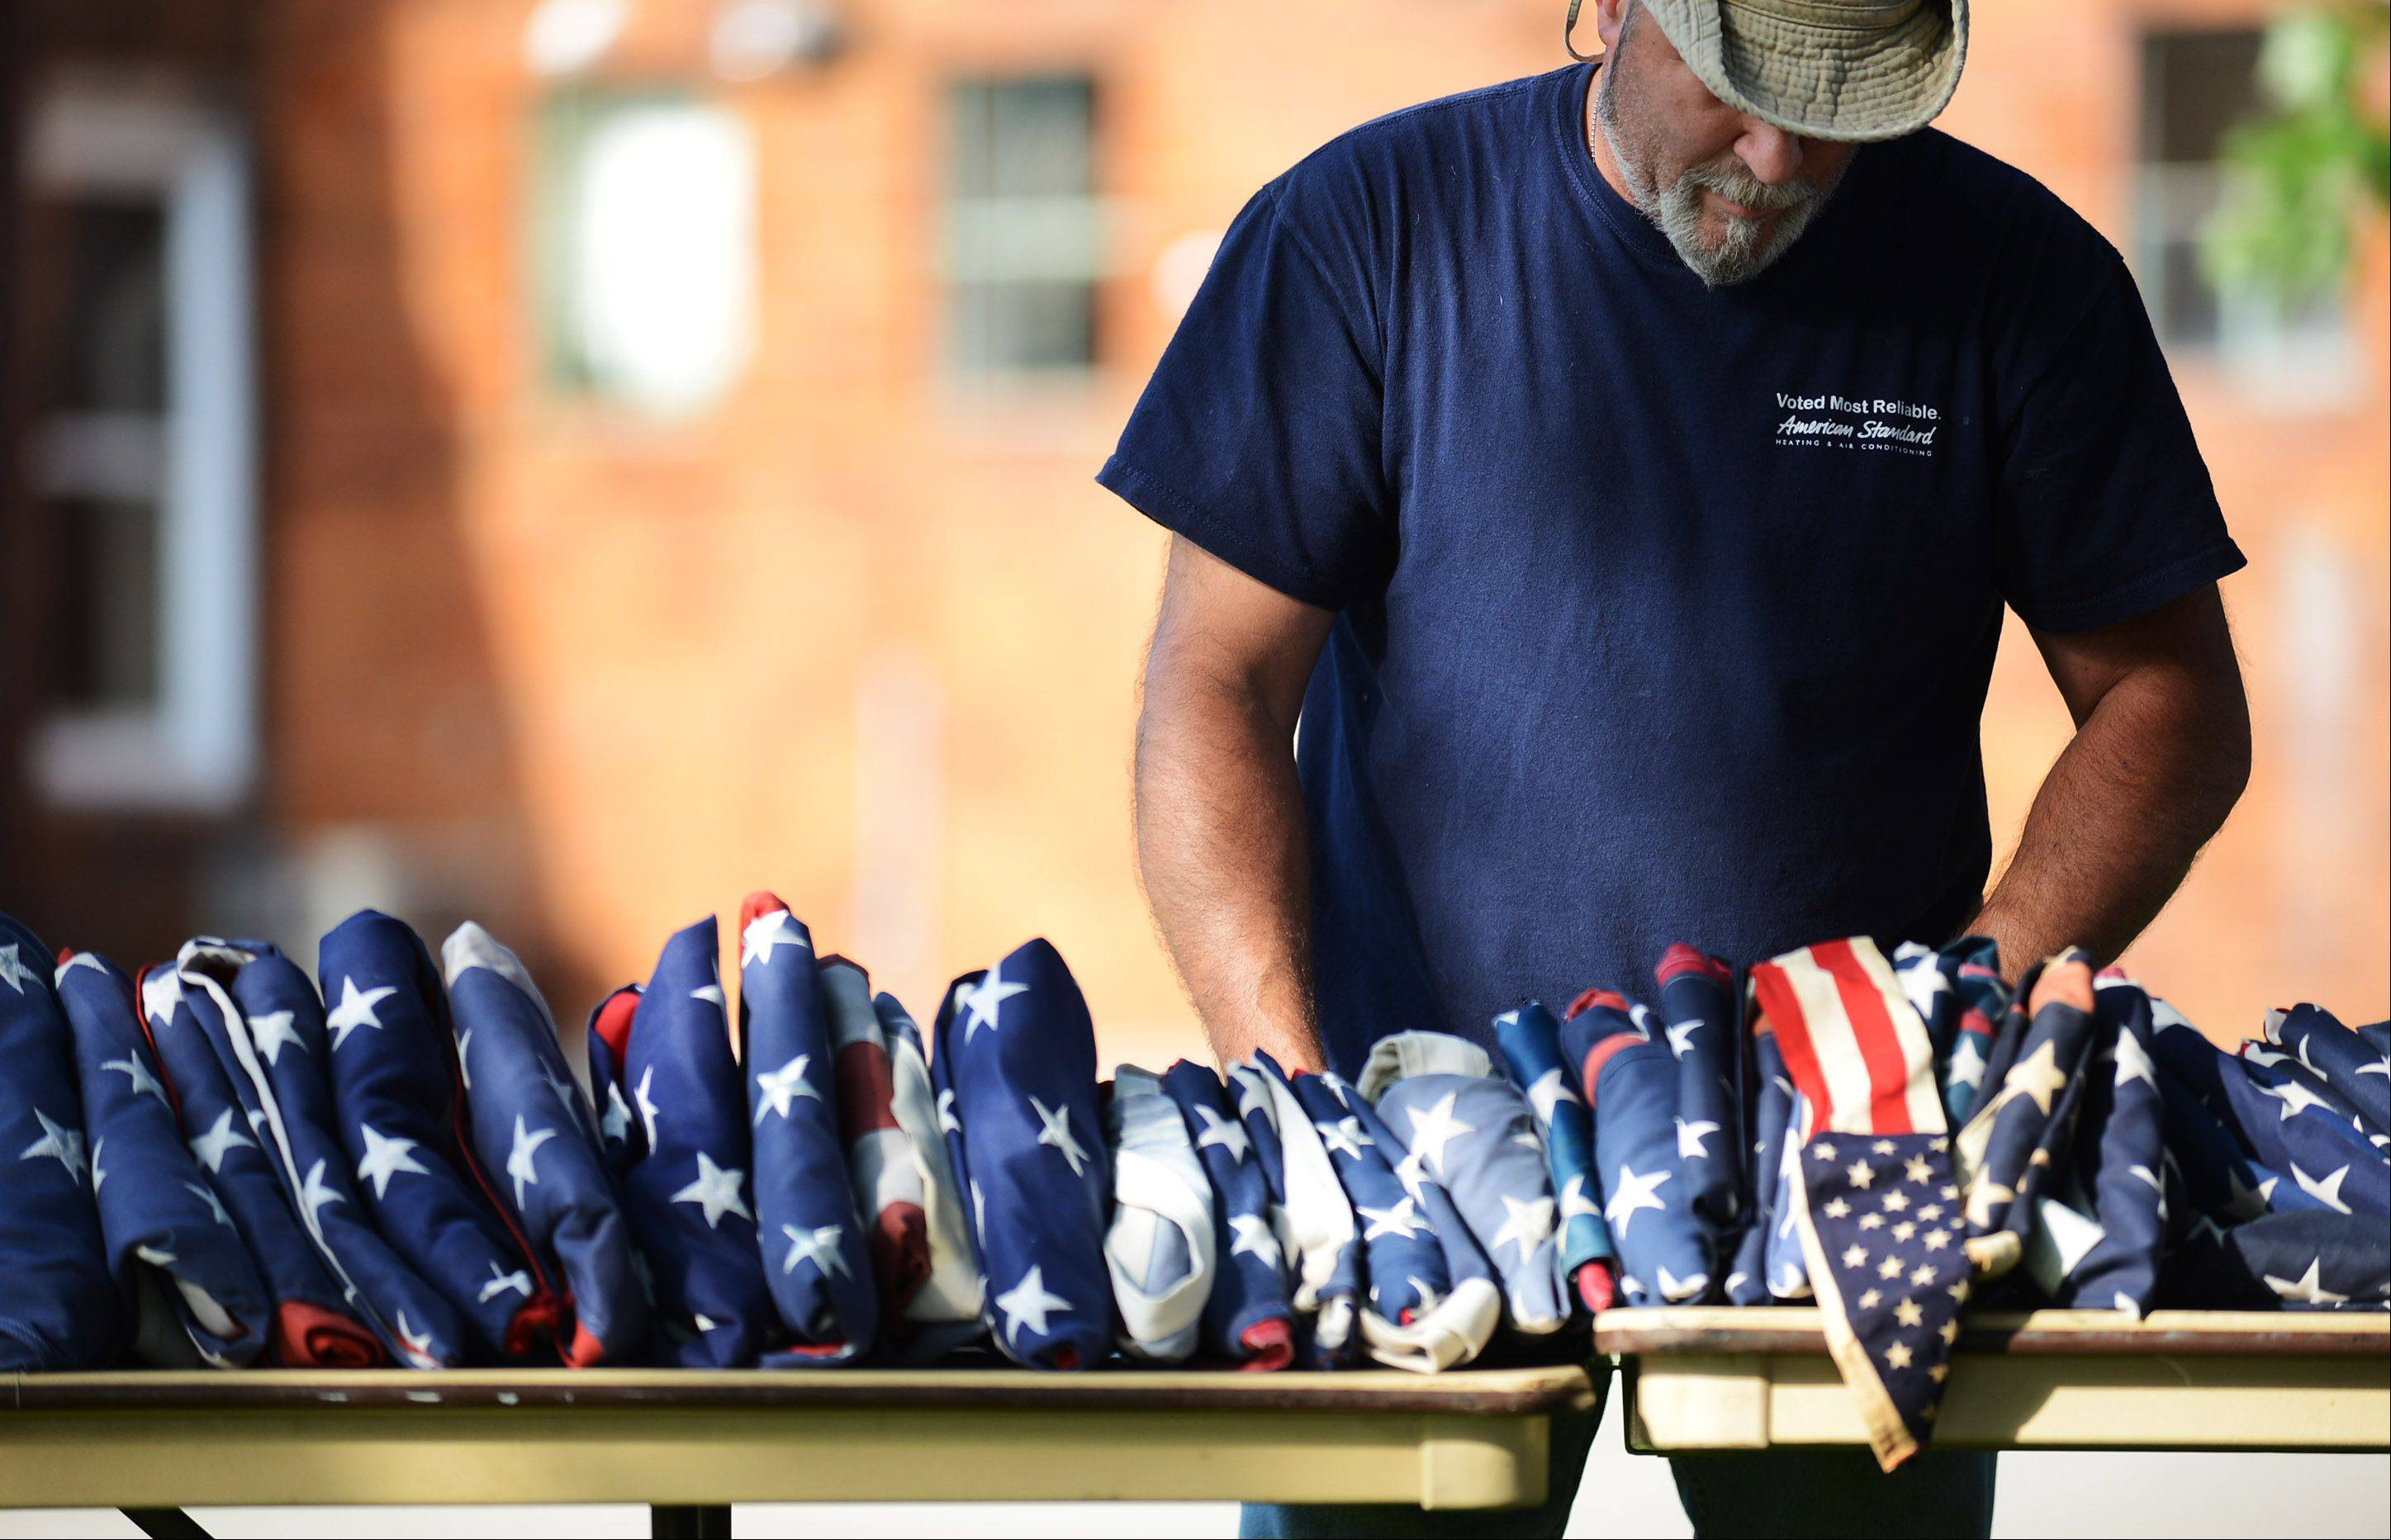 Mike Carter, of Sugar Grove, carefully arranges flags at a flag disposal ceremony Friday. The event was held at the Sugar Grove Veterans Park, where people could respectfully dispose of their warn-out United States flags.